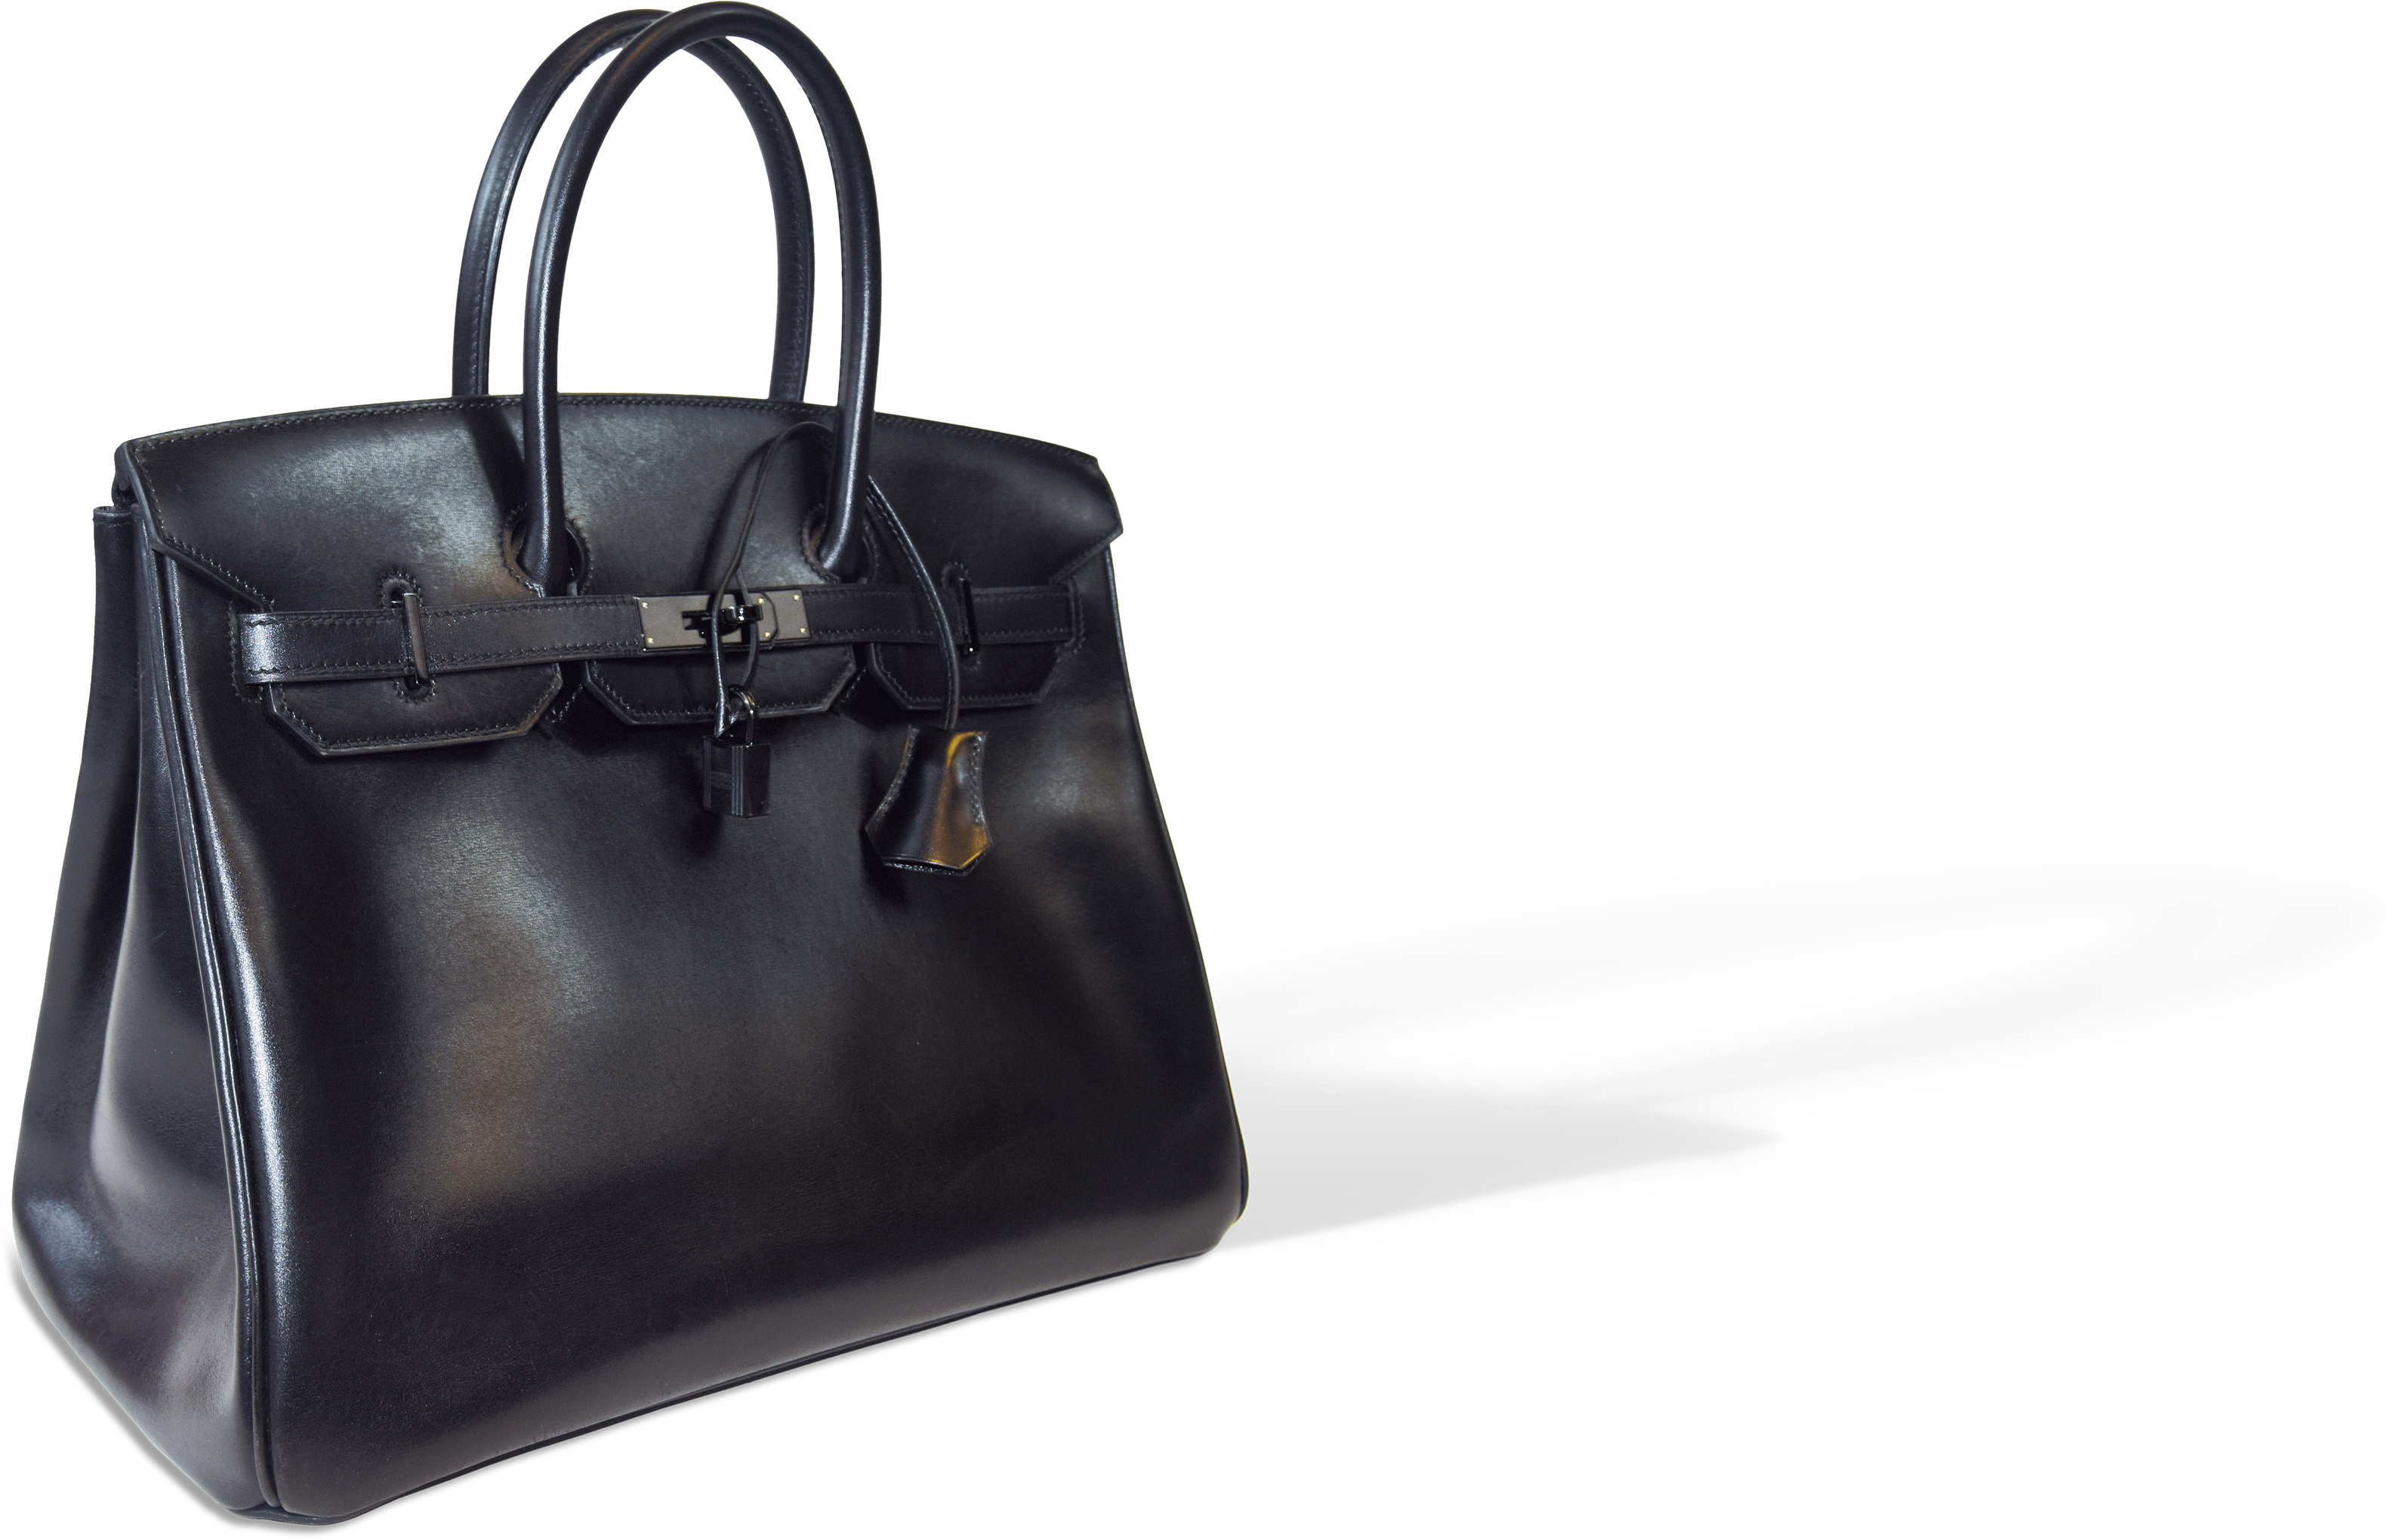 Hermès Birkin So Black bag valued at between 16,000 euros and 18,000 euros